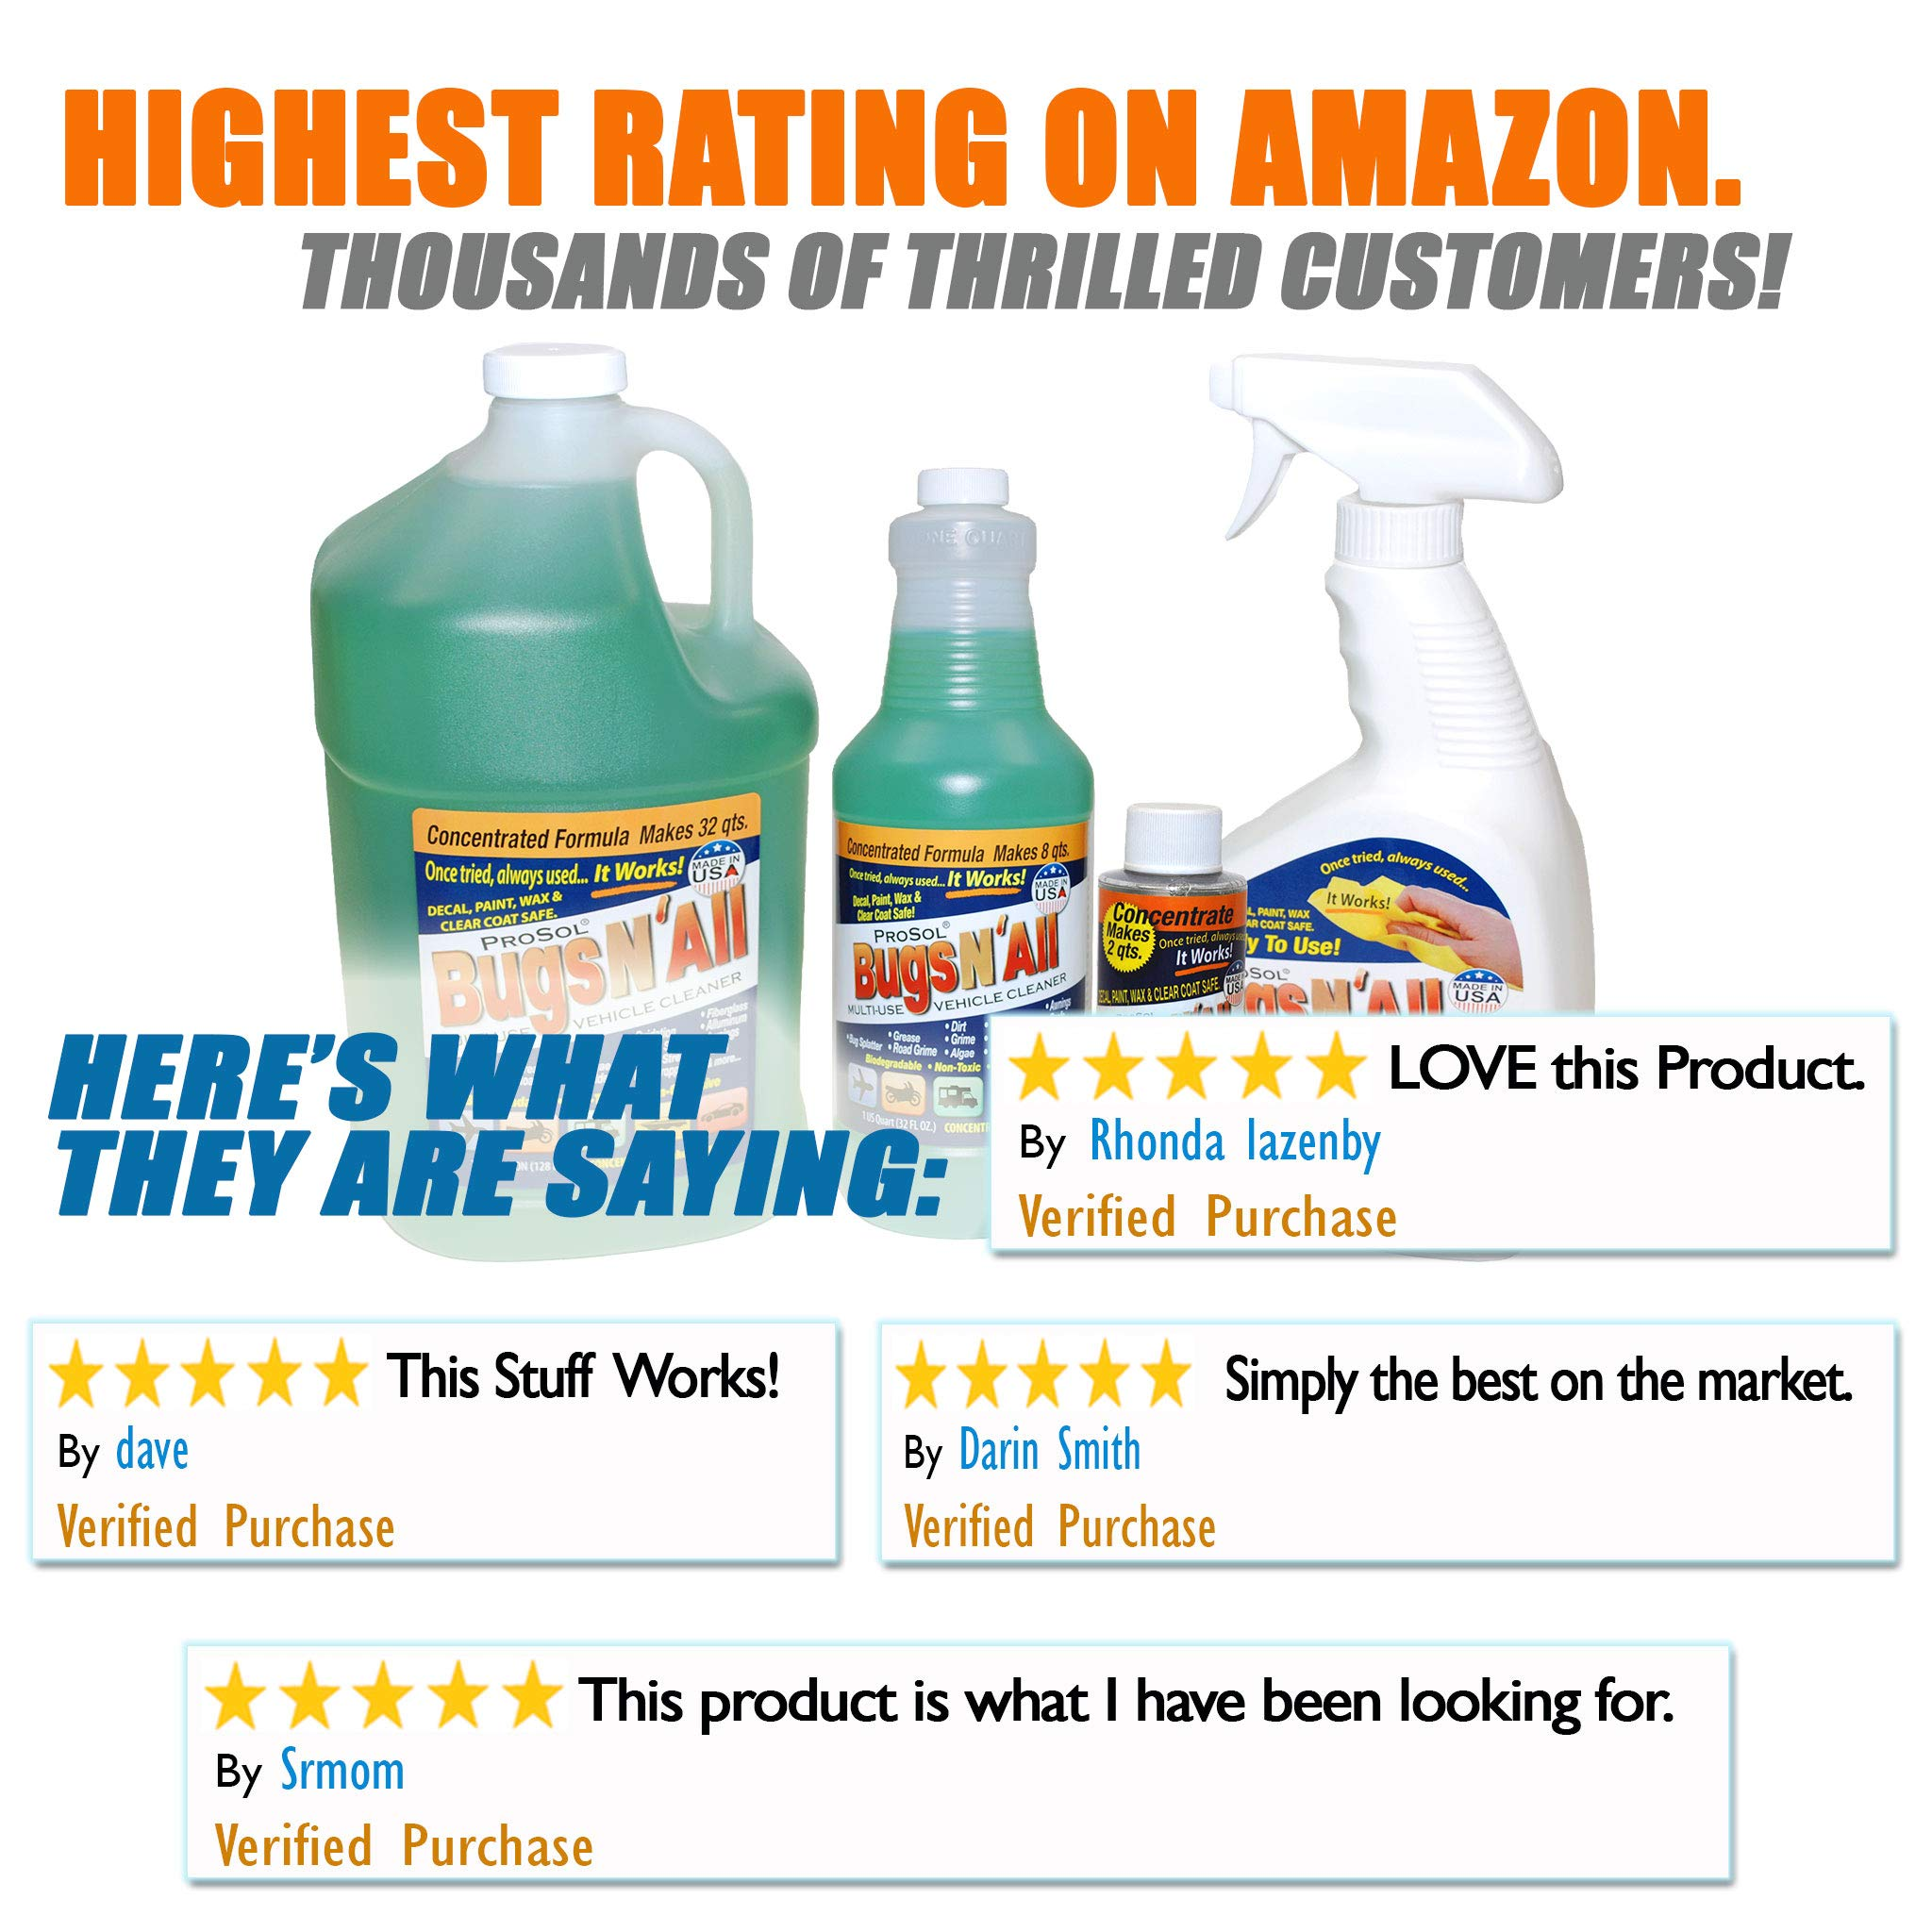 Bugs N All - Multi-Surface Vehicle Cleaner/Bug Remover. 1qt. Concentrate Makes 8 Quarts. Includes an Empty 1 Qt. Spray Bottle - Safe on Wax, Clear Coat, Paint, Decals and on All Surfaces. by ProSol (Image #2)